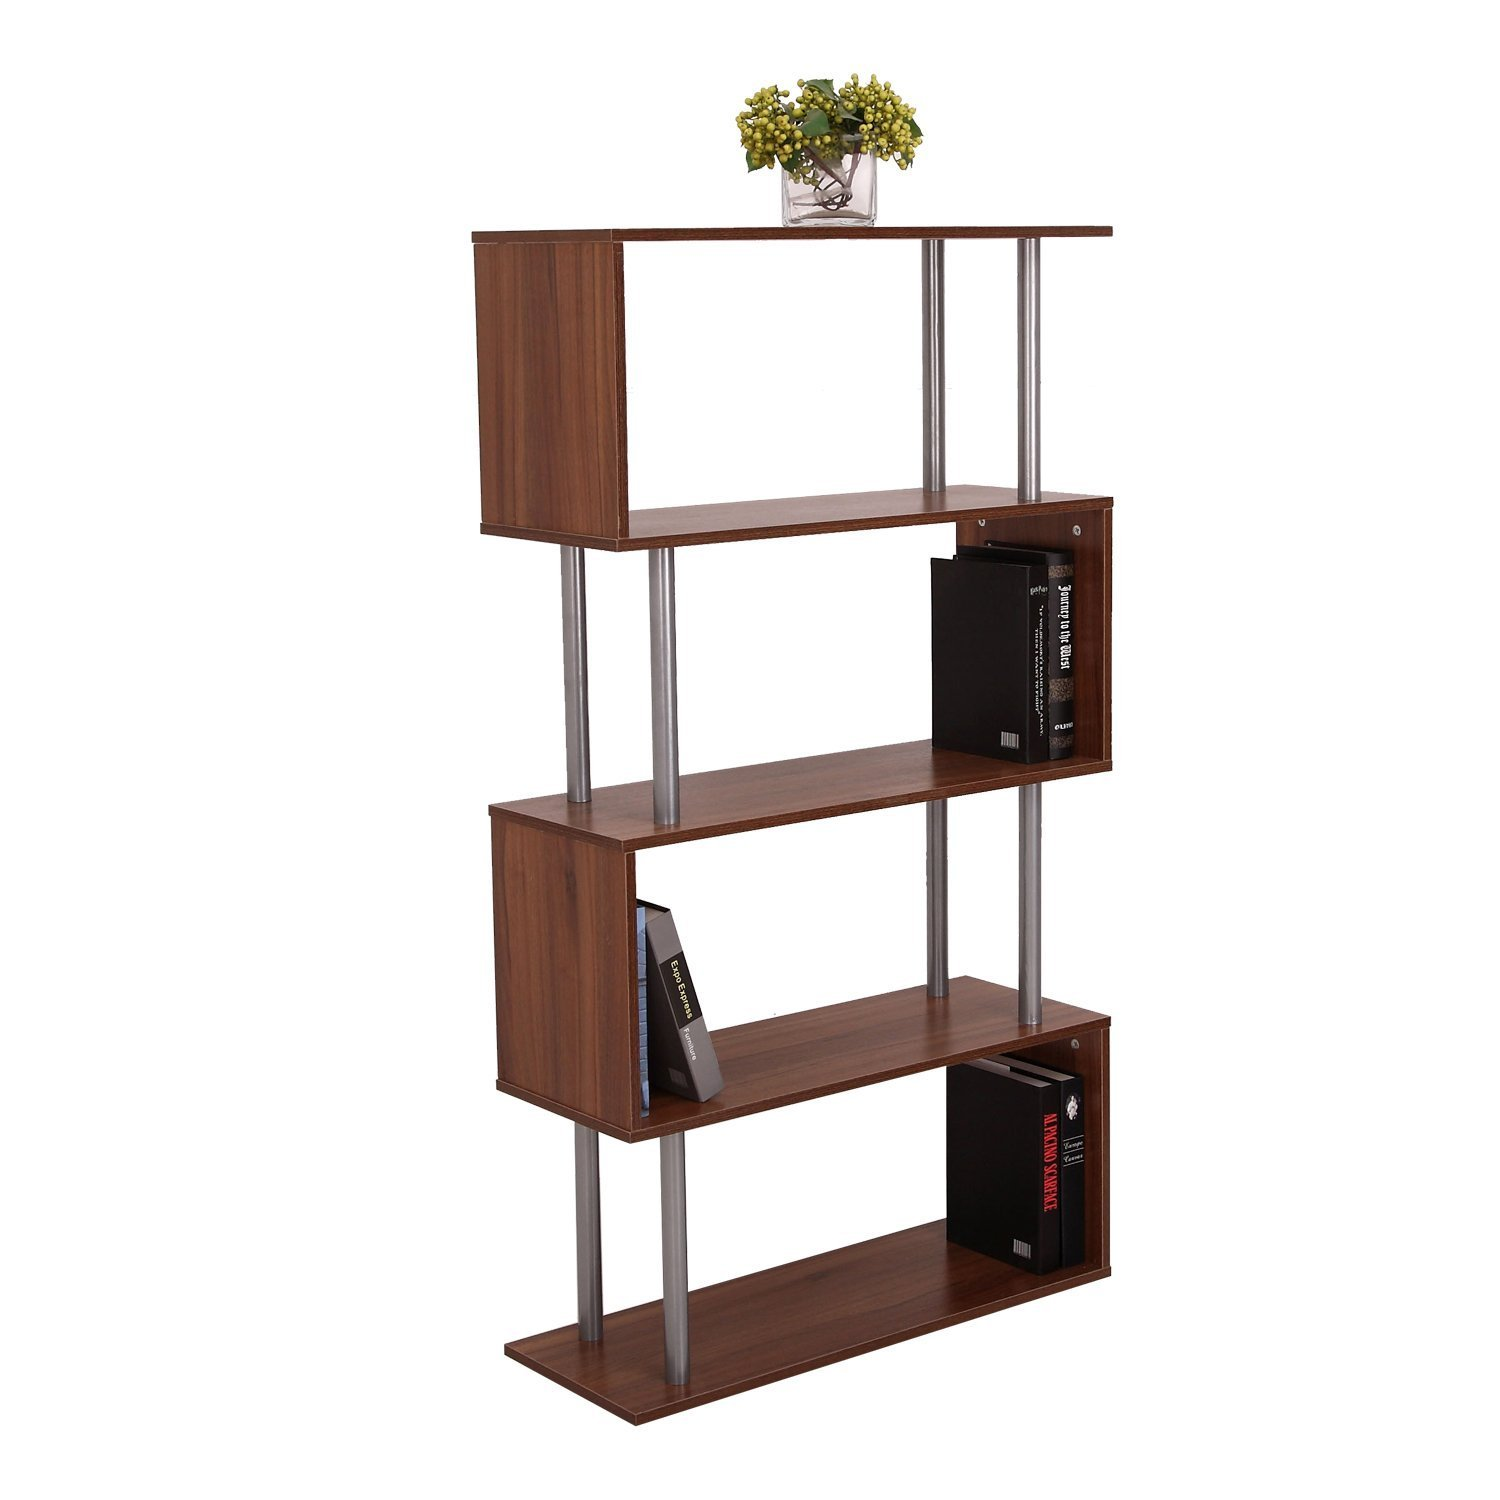 wood office cabinet. HOMCOM Wooden Wood S Shape Storage Unit Chest Bookshelf Bookcase Cupboard Cabinet Home Office Furniture New (Walnut): Amazon.co.uk: Kitchen \u0026 O